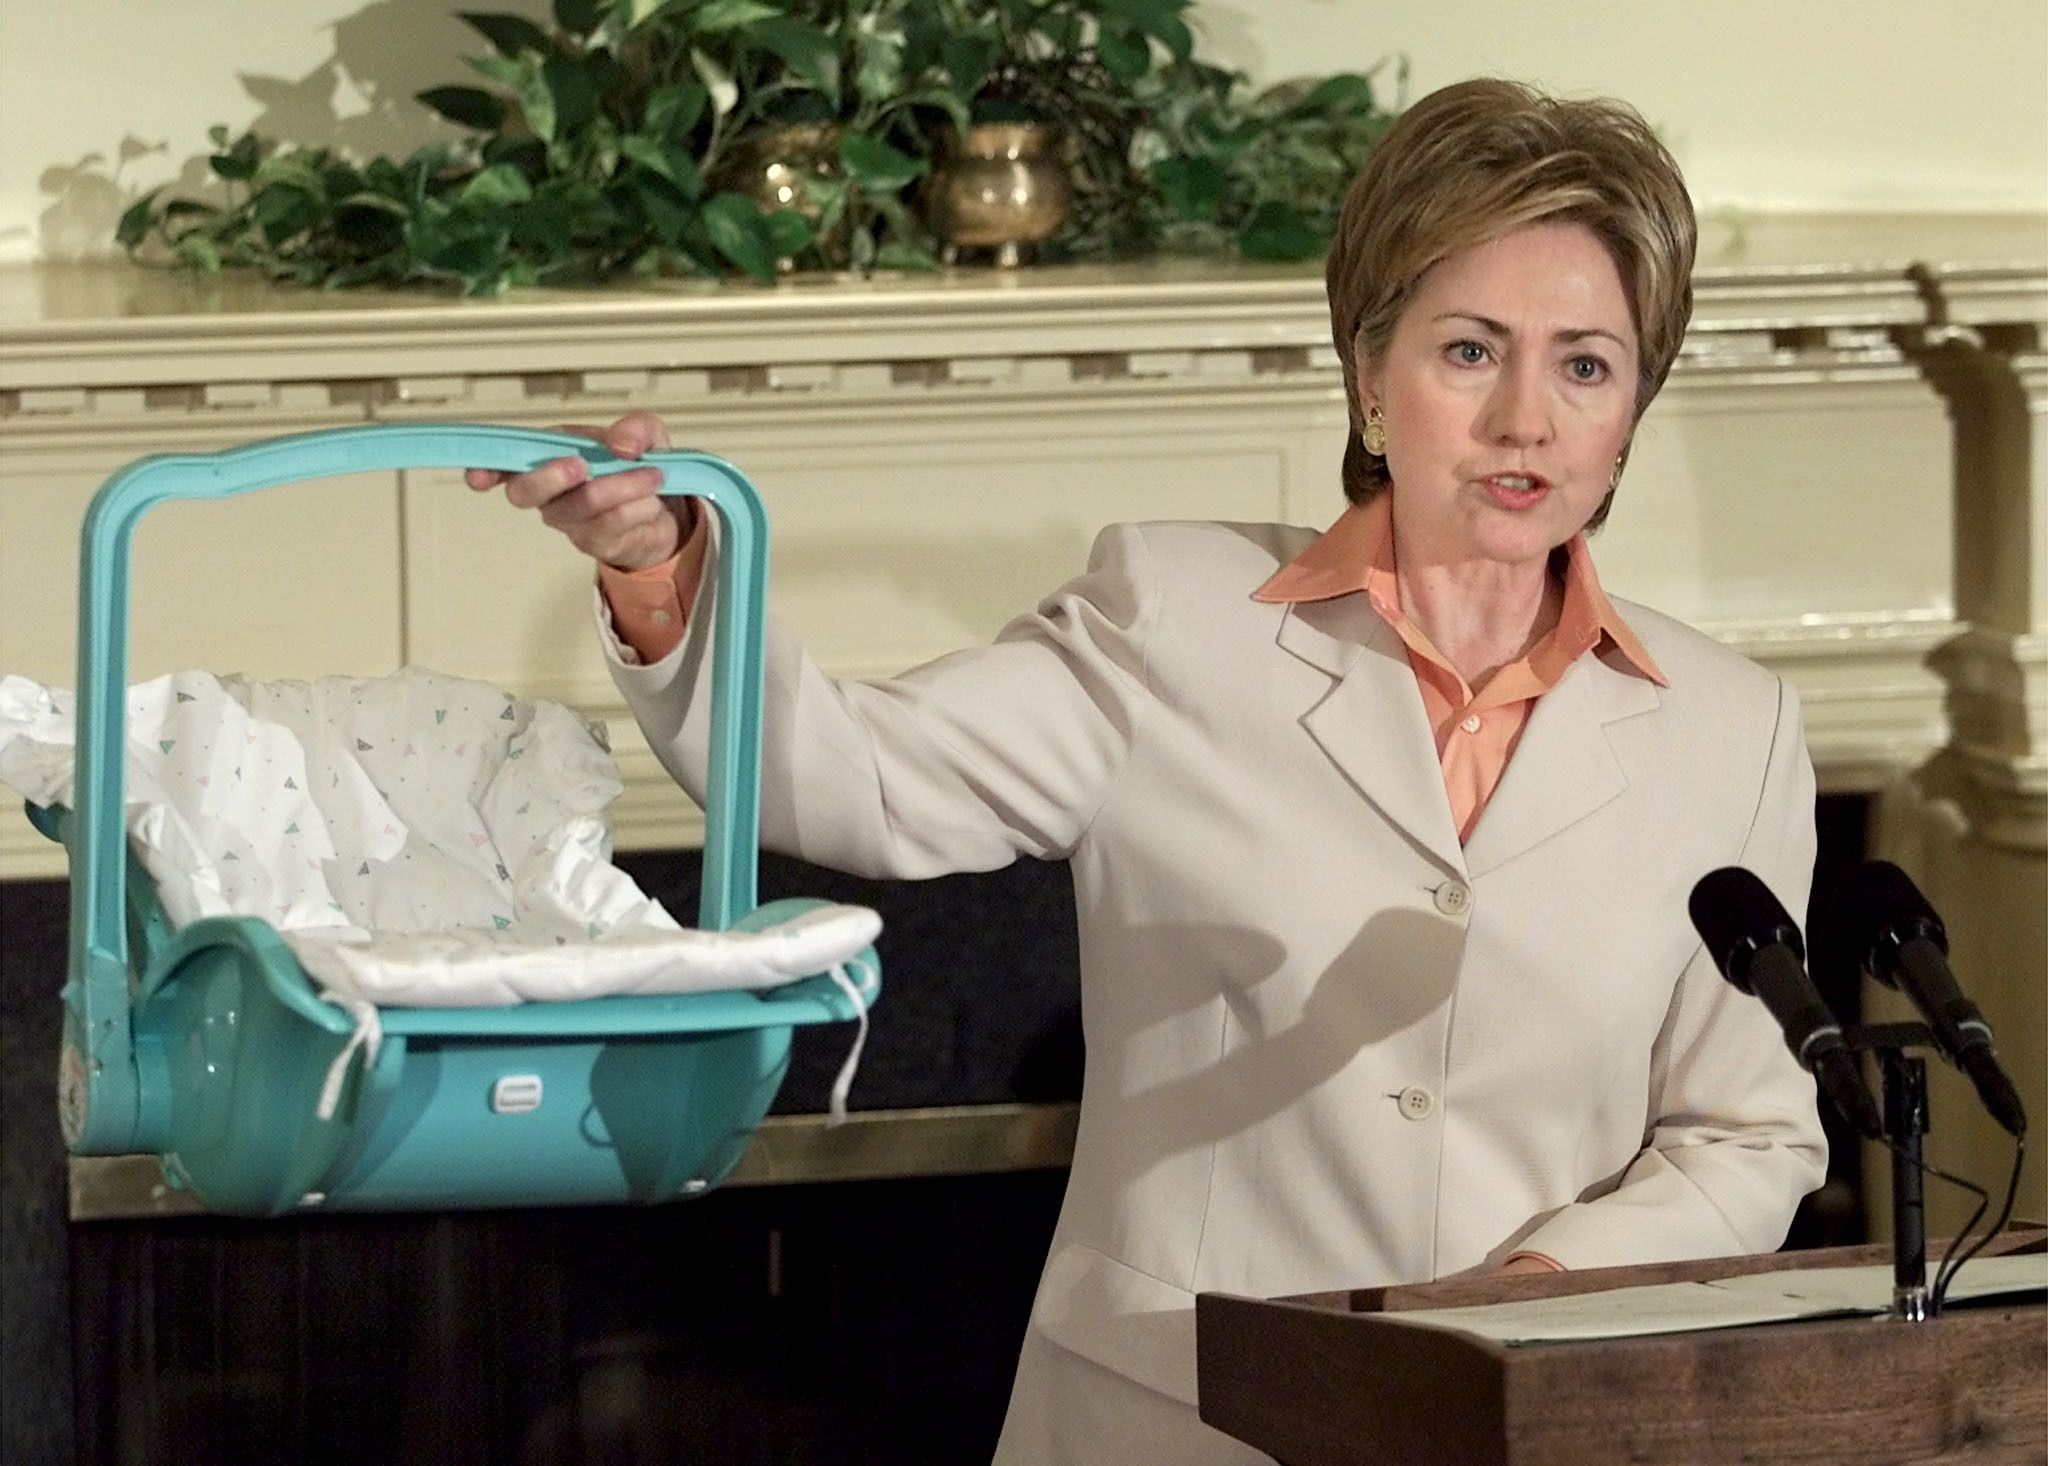 Later that year, Clinton held an event at the White House on preventing potential harm to children from defective products. (Photo via Reuters)  via @AOL_Lifestyle Read more: http://www.aol.com/article/2016/06/20/heres-why-voters-dont-like-donald-trump-and-hillary-clinton/21398108/?a_dgi=aolshare_pinterest#fullscreen